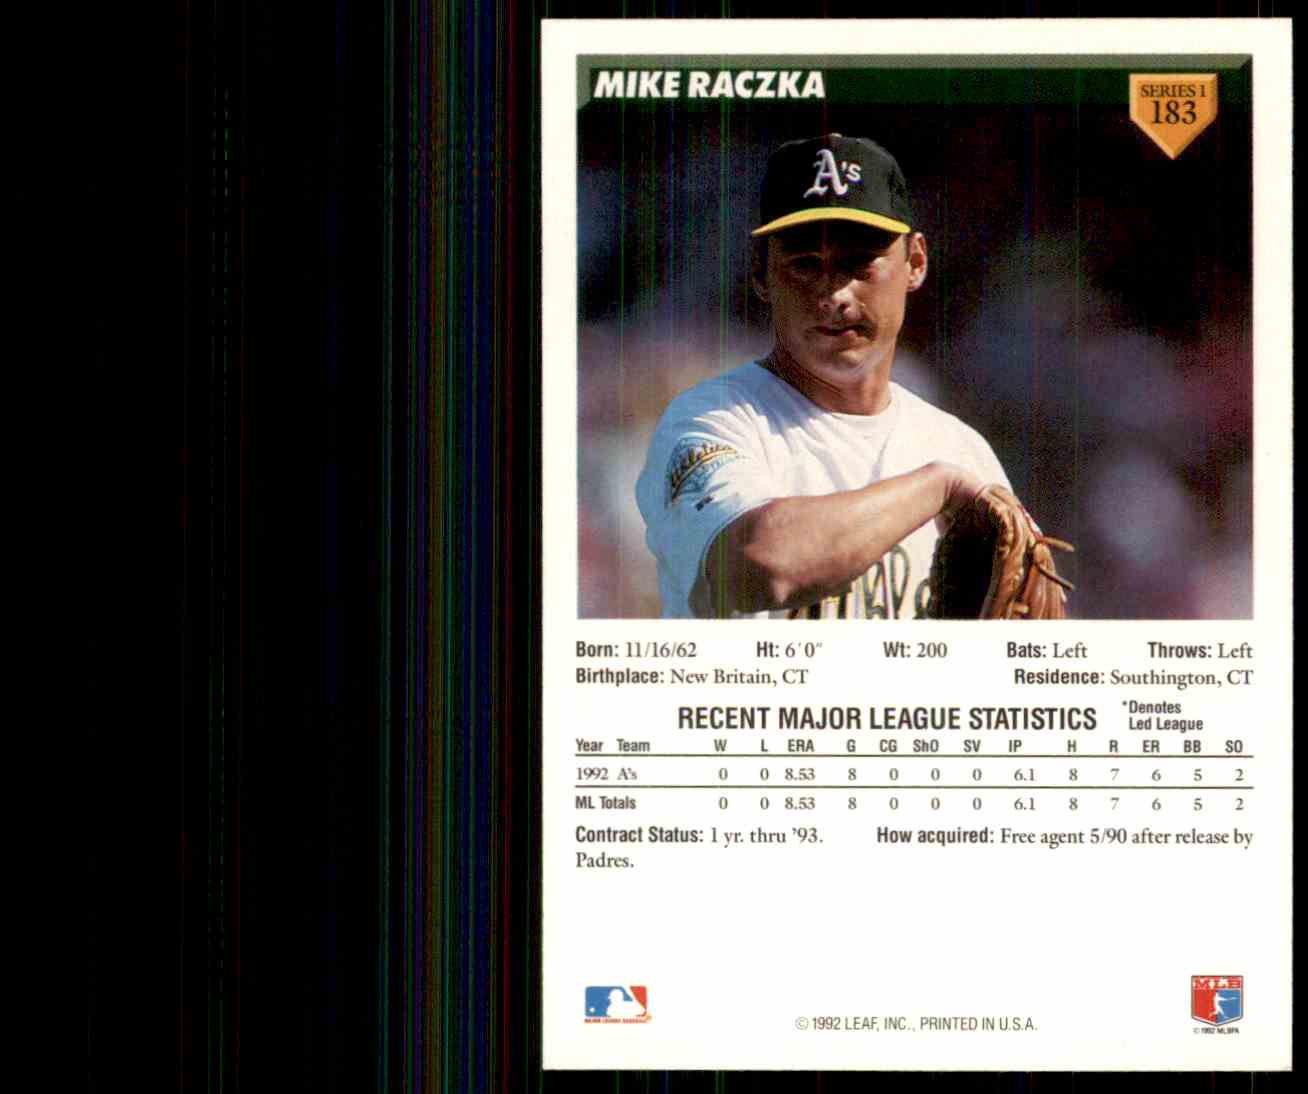 1993 Donruss Mike Raczka #183 card back image